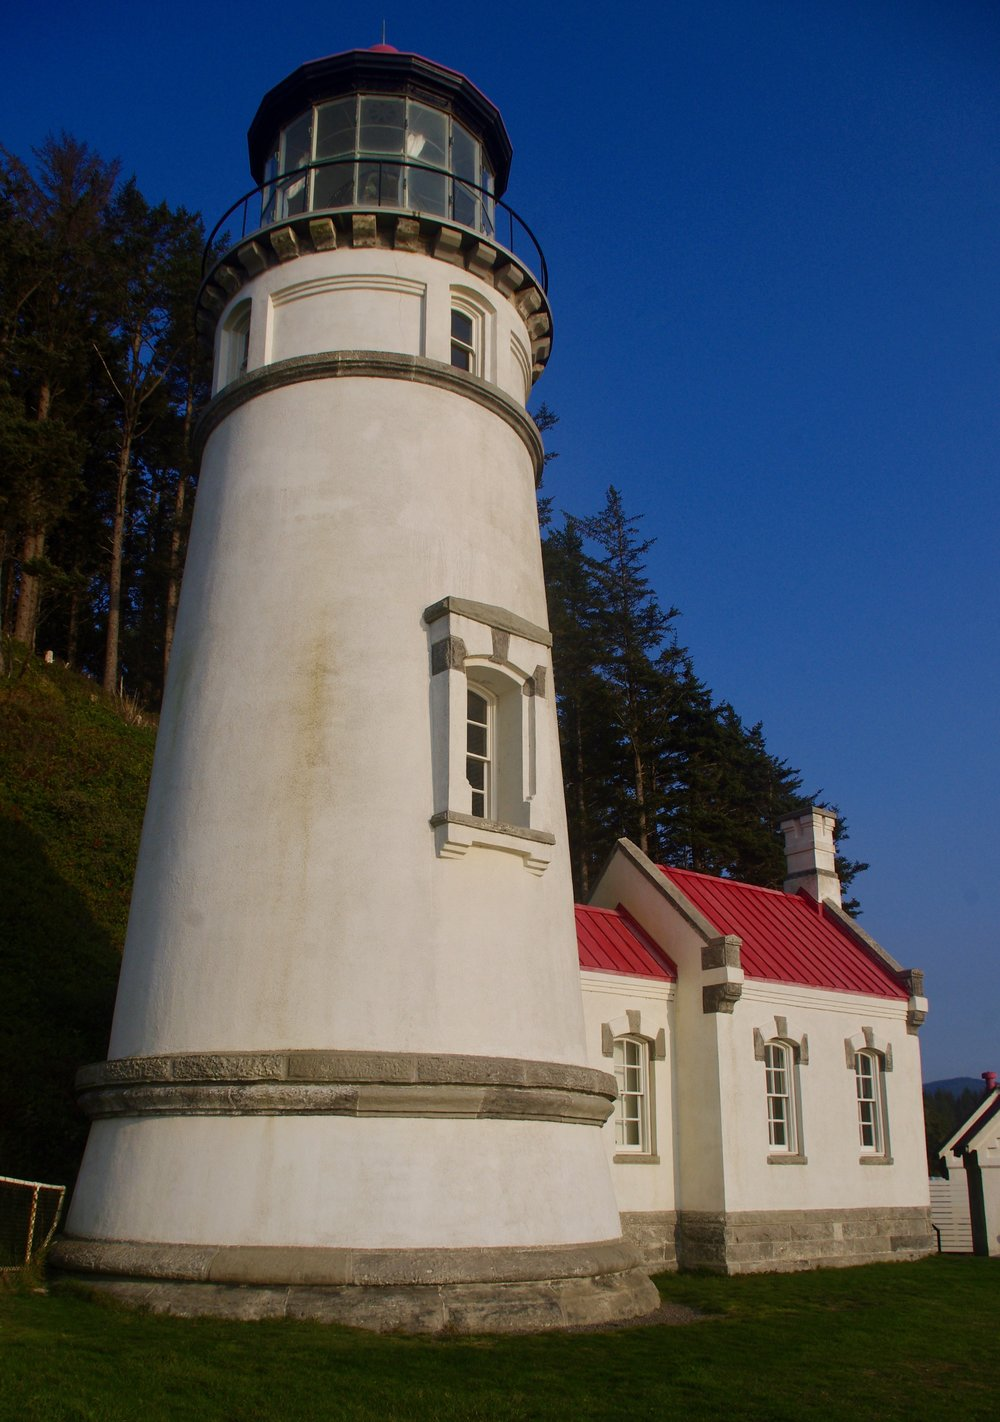 Here is the lighthouse…